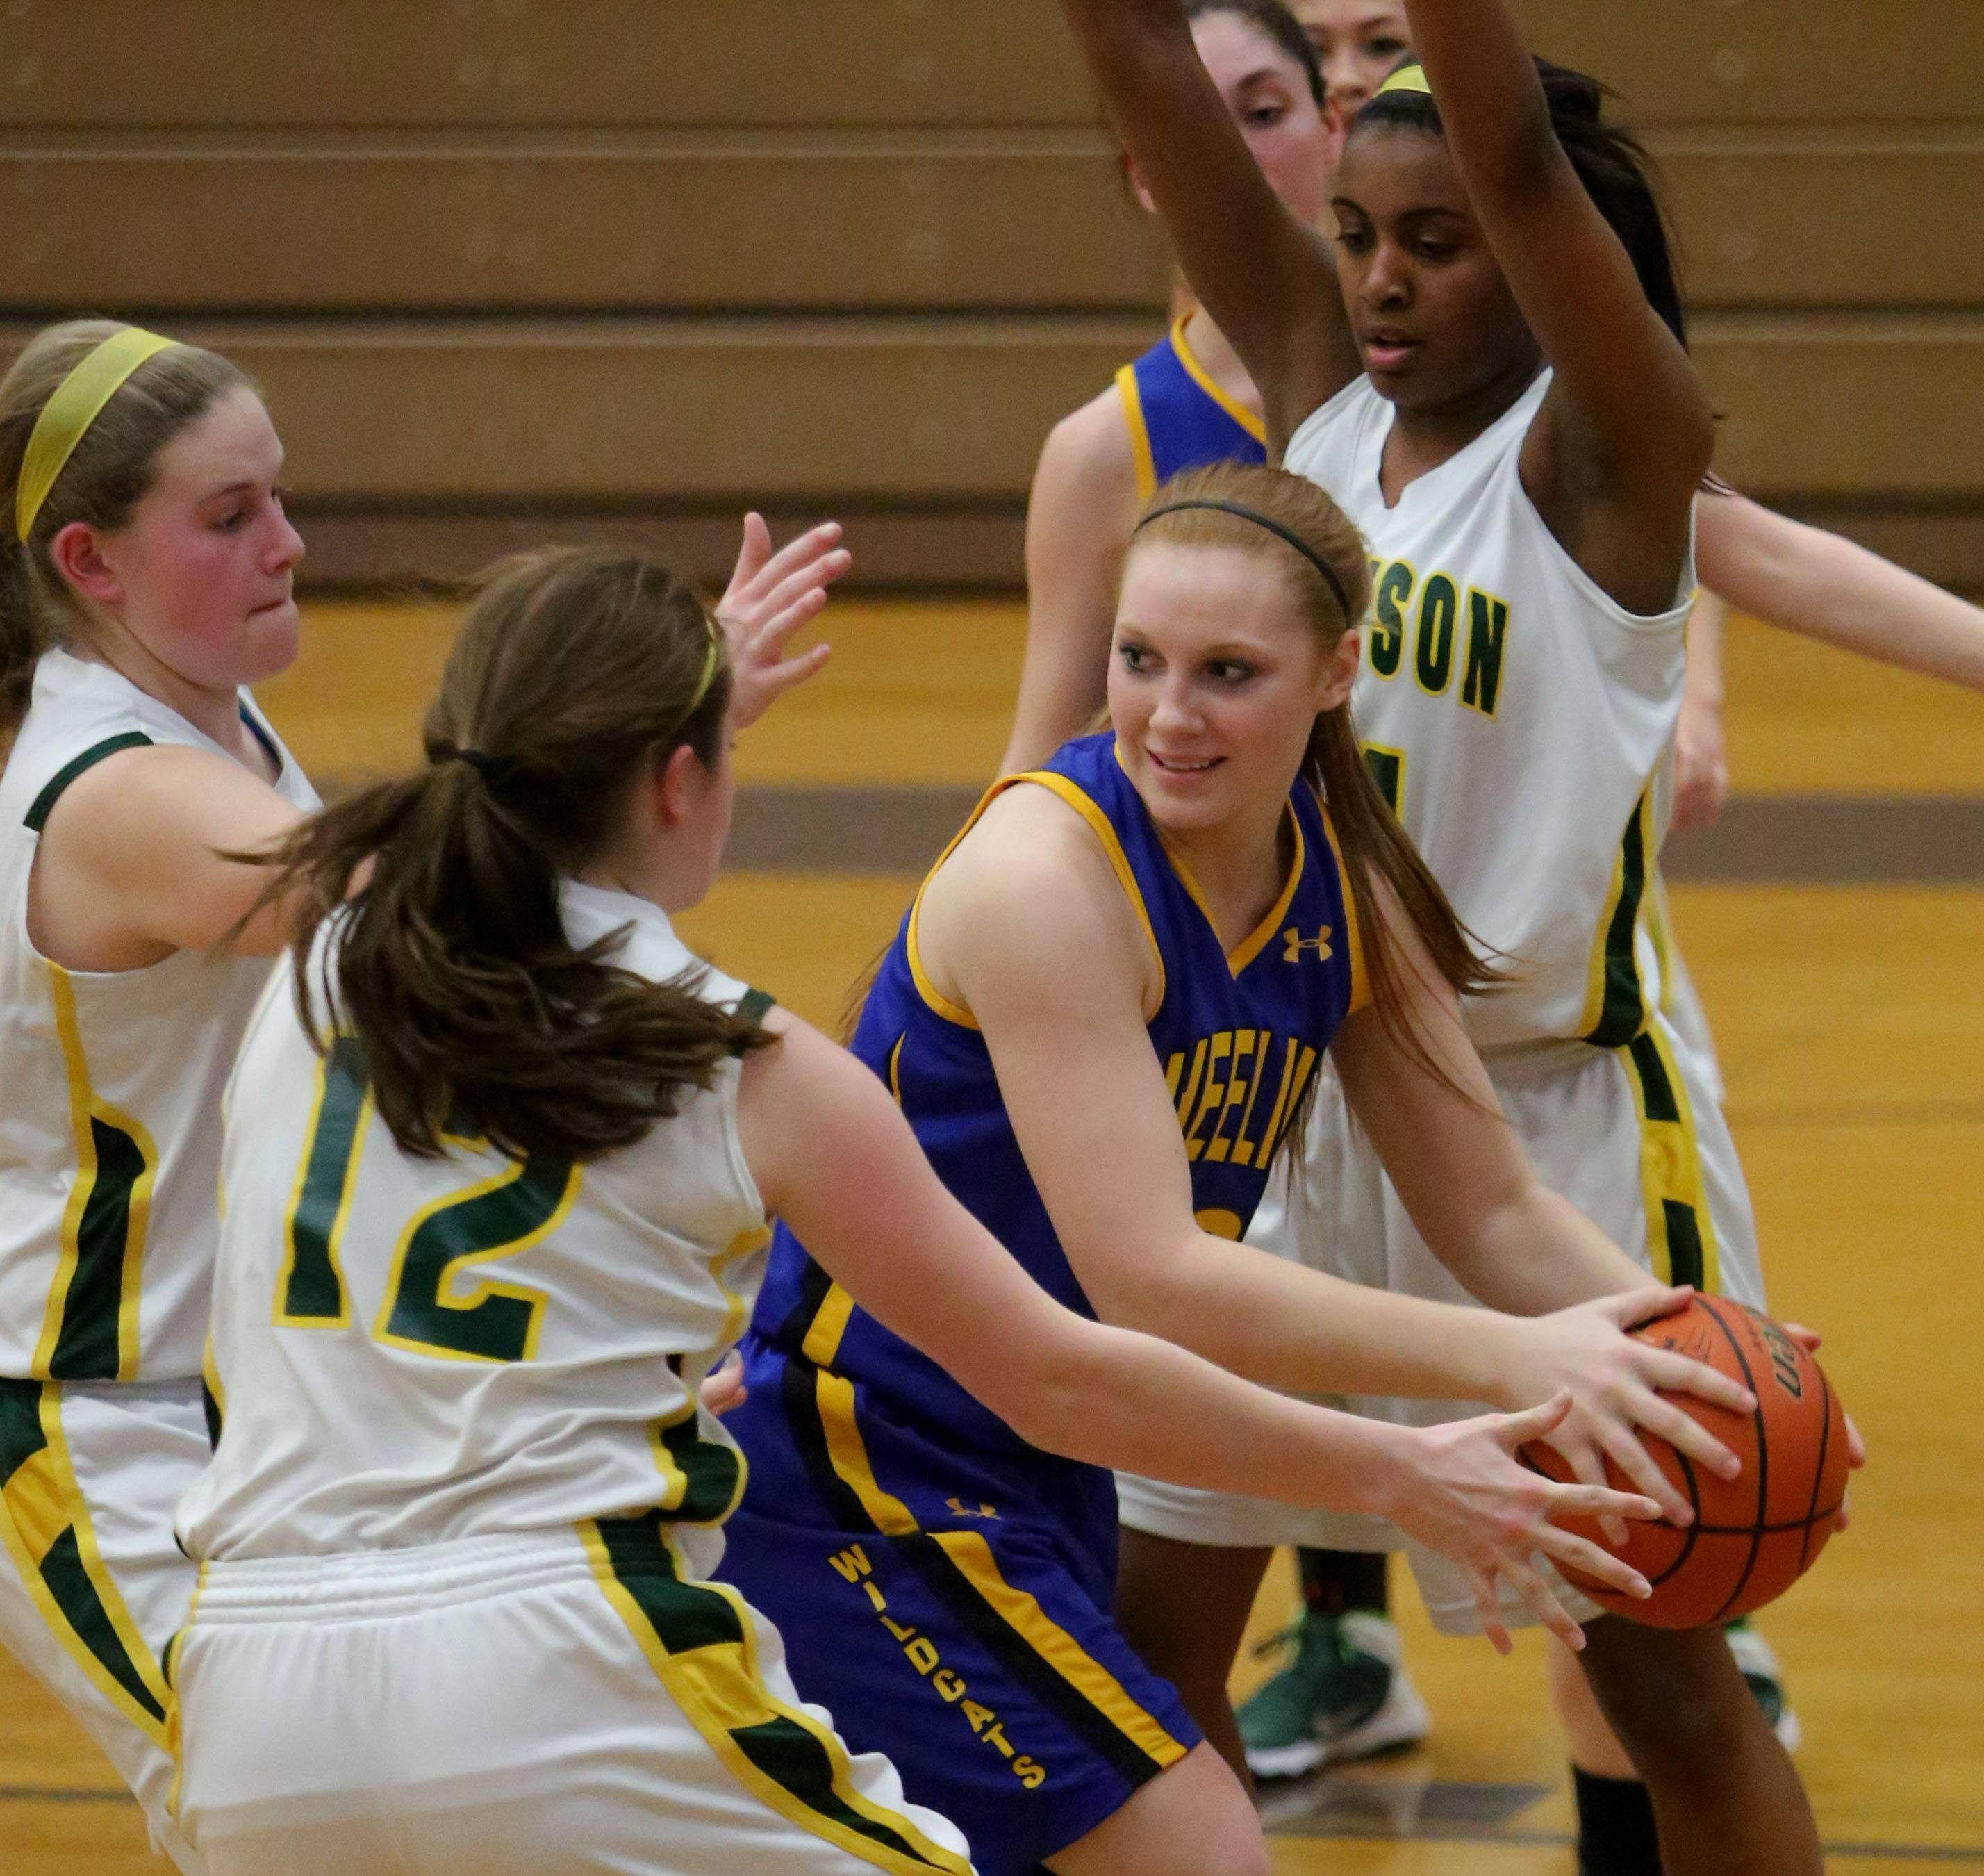 Wheeling's Michaela Vasey gets trapped by a host of Stevenson players.